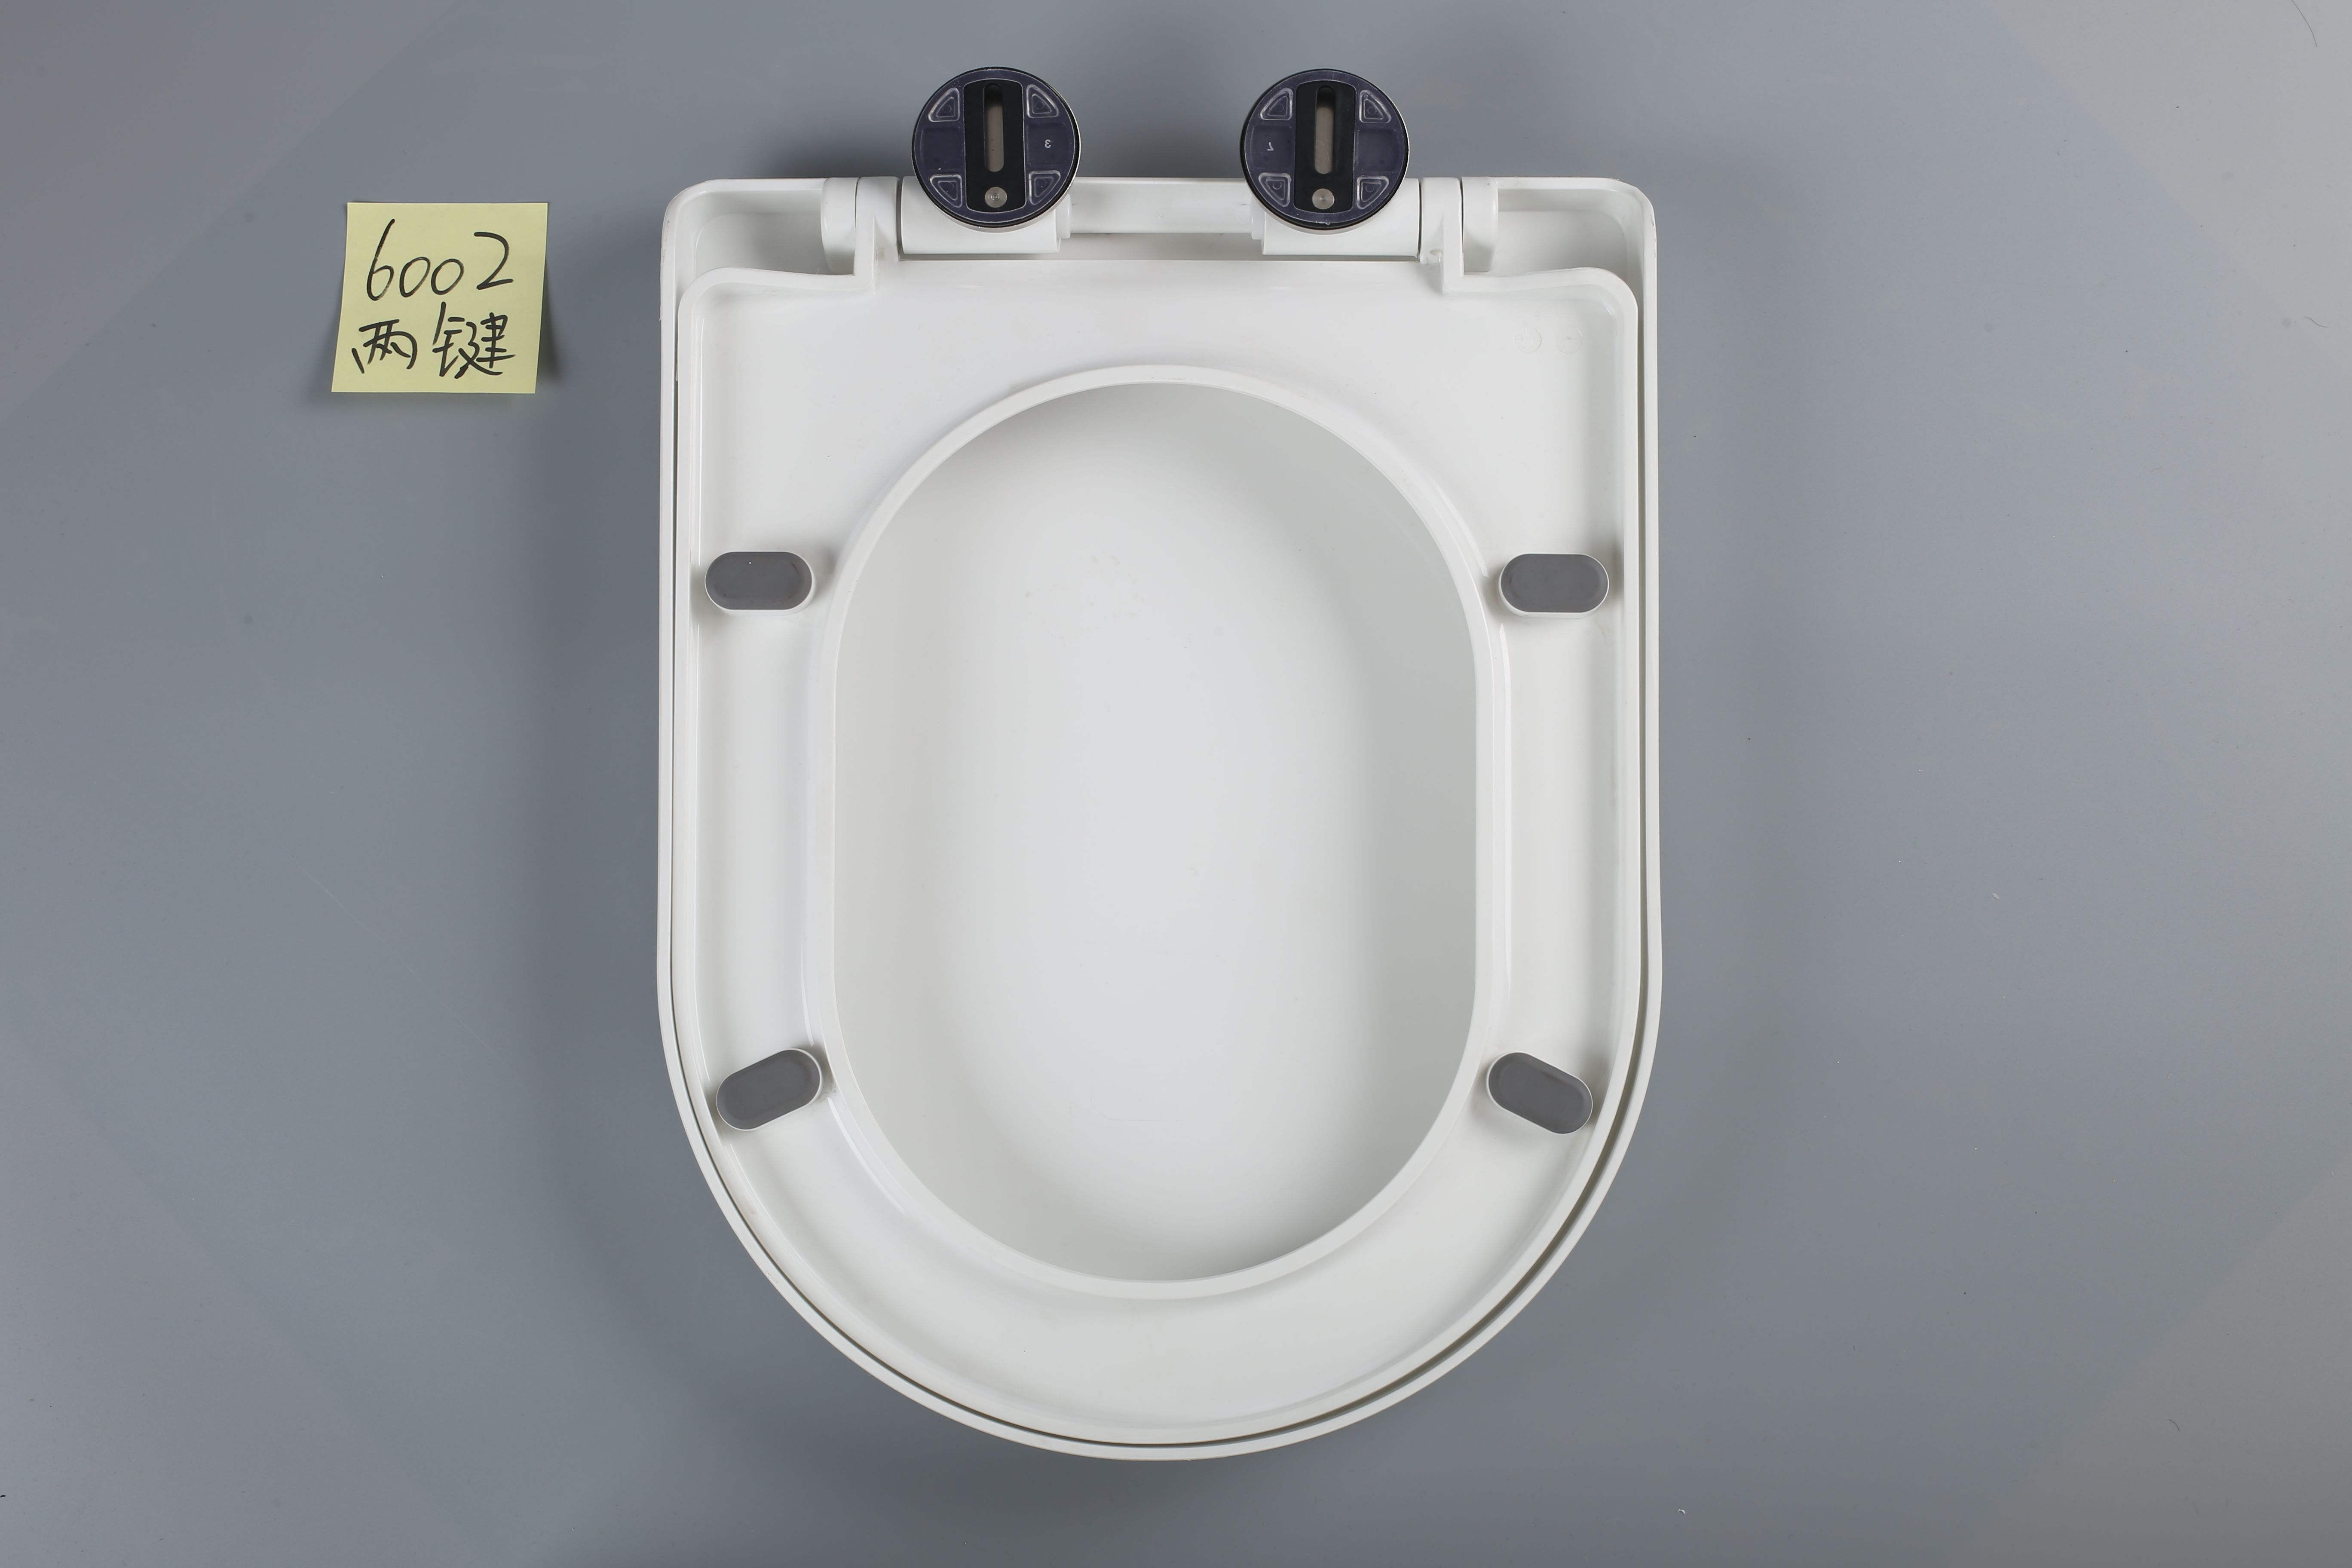 Wc Toilet Seat Lid Cover Thermoset Plastic In 2020 Toilet Seat Toilet Seat Cover Toilet Seat Lid Covers